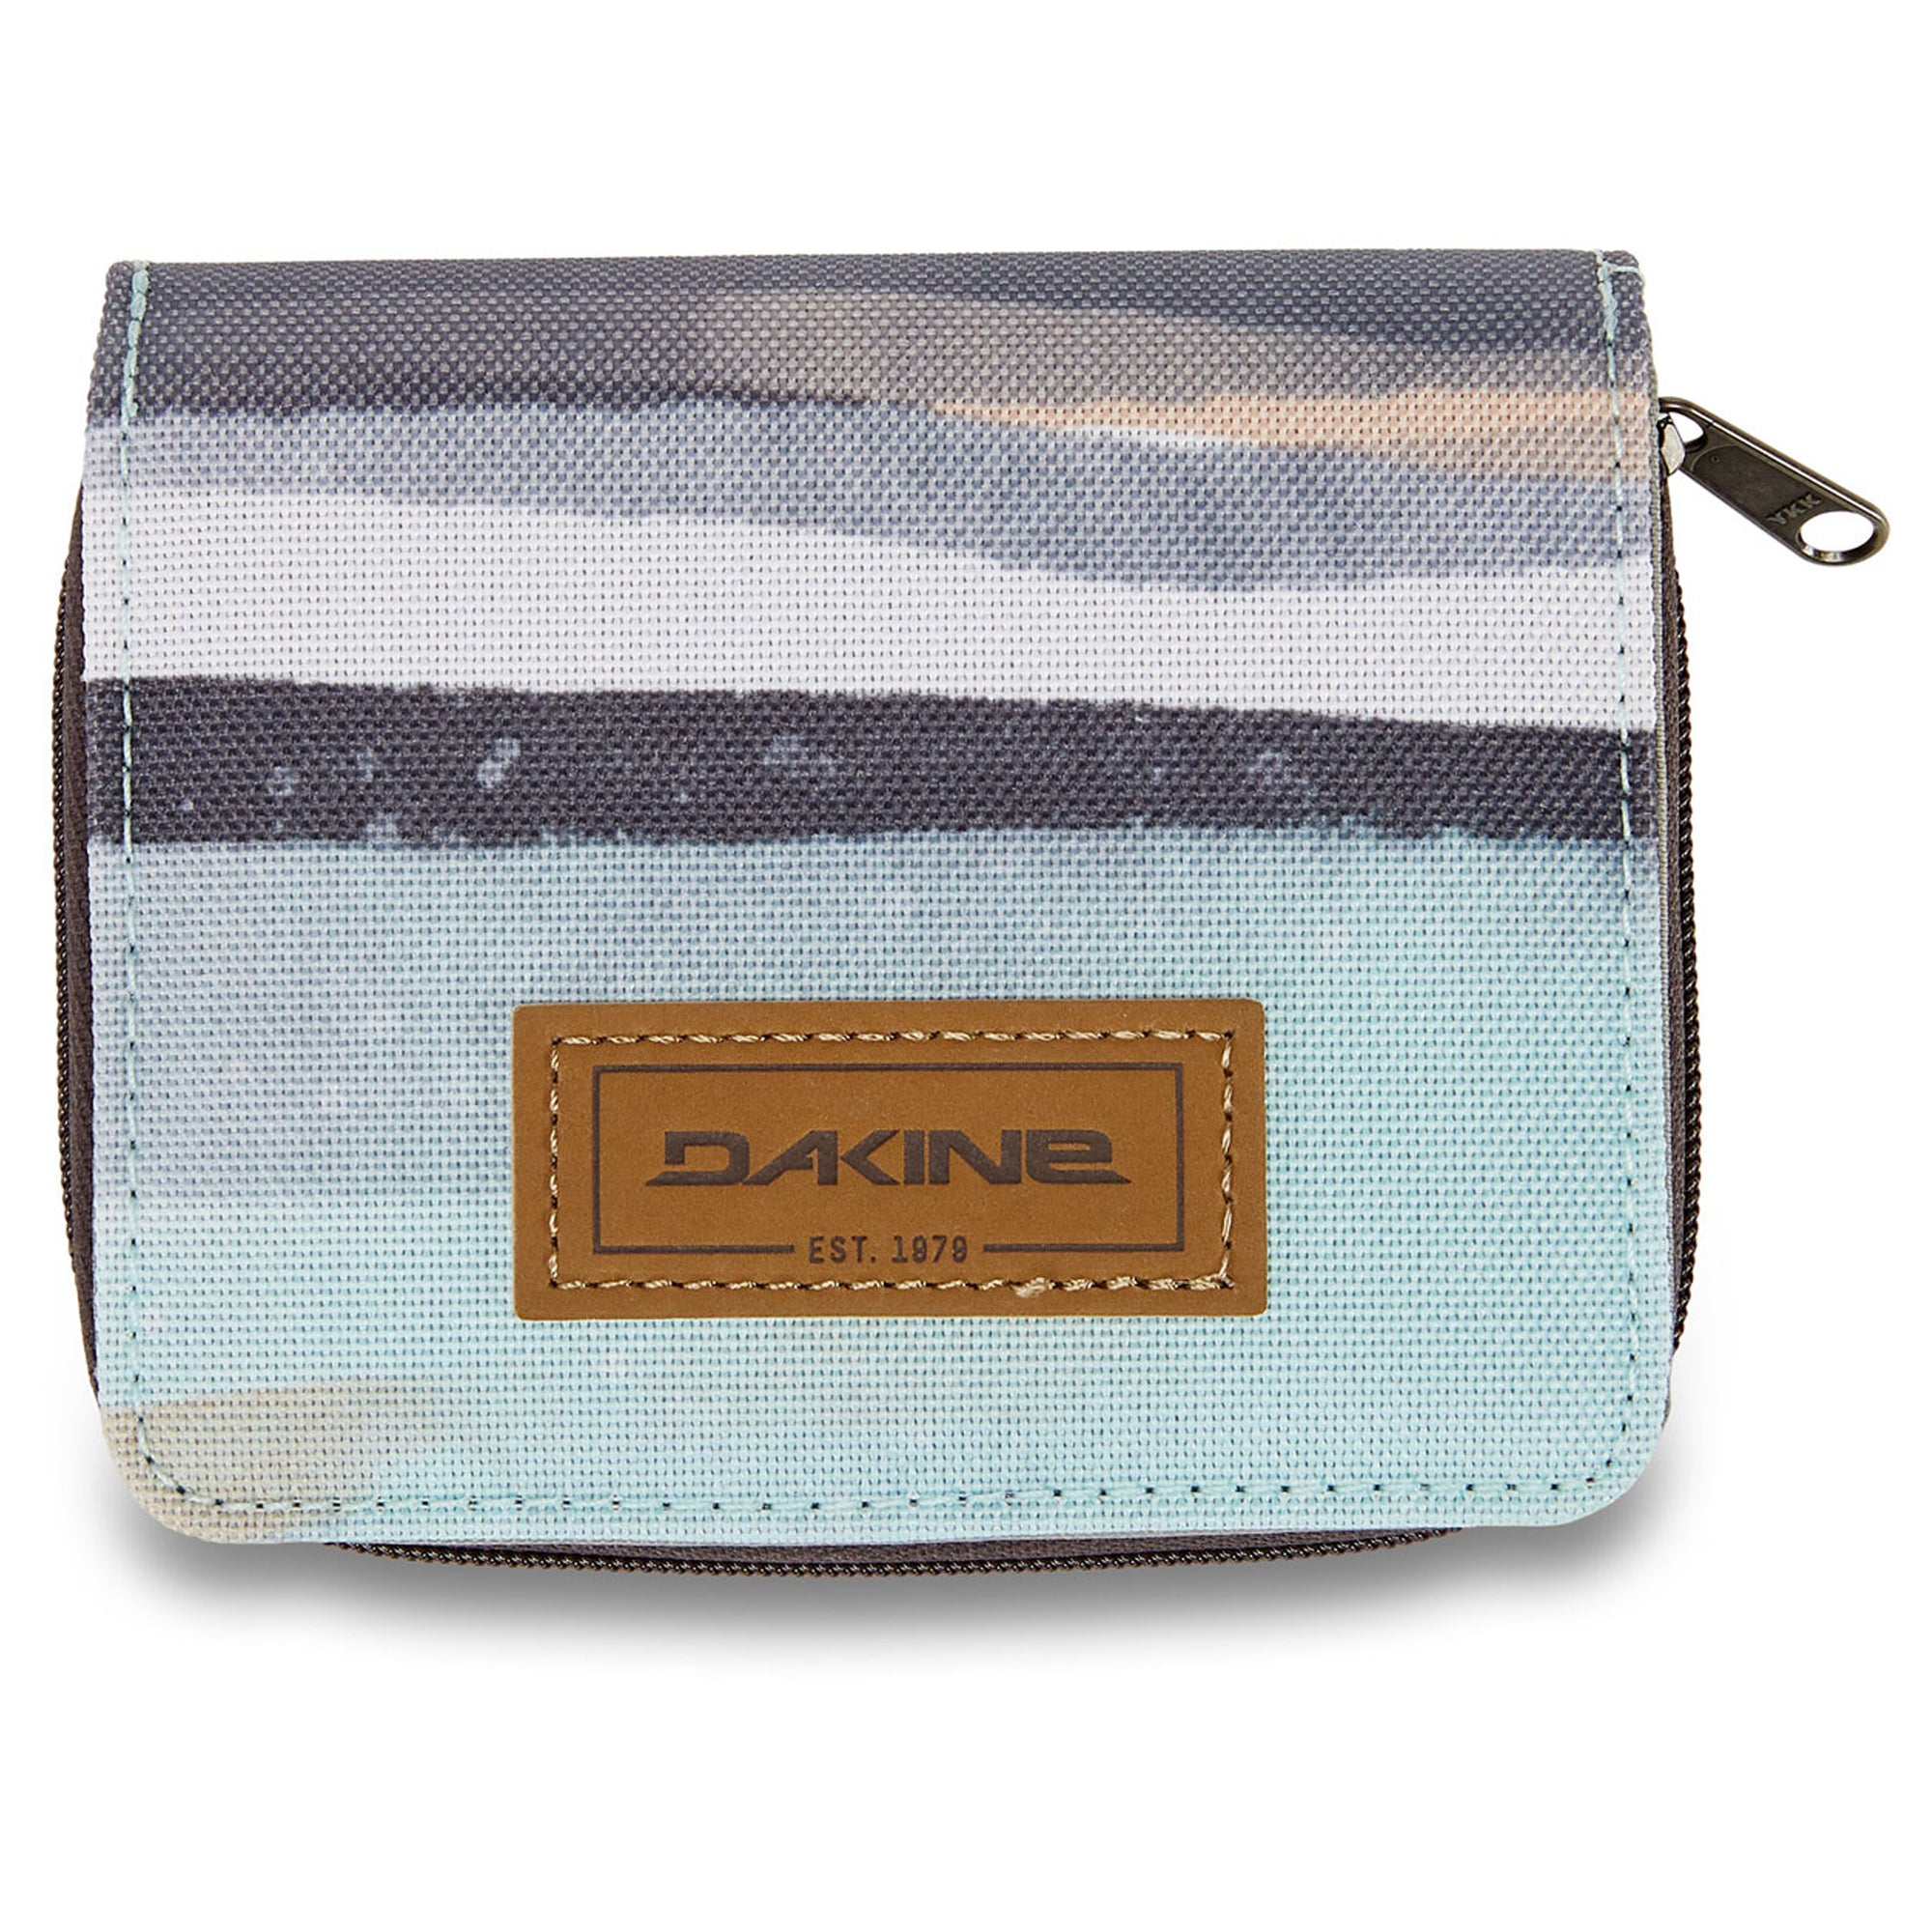 Dakine SOHO Women's Wallet